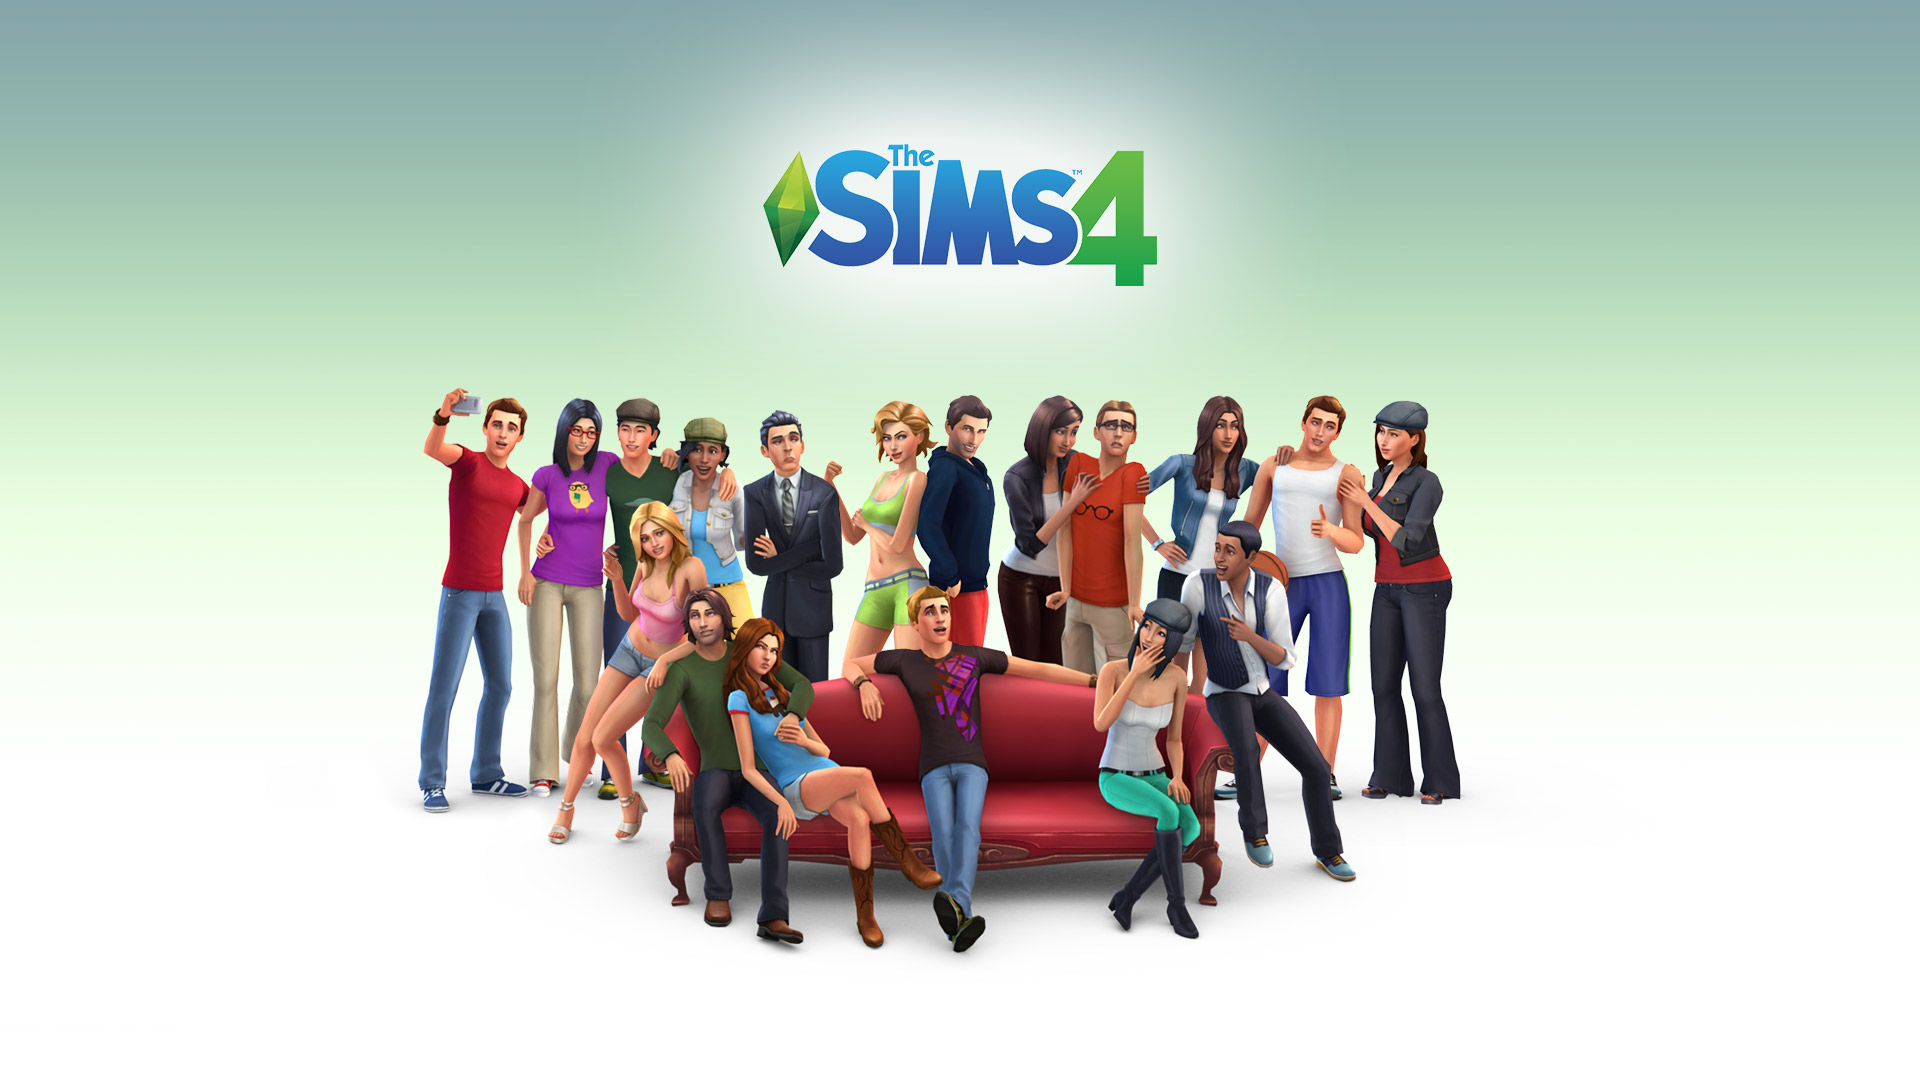 Free The Sims 4 Wallpaper in 1920x1080